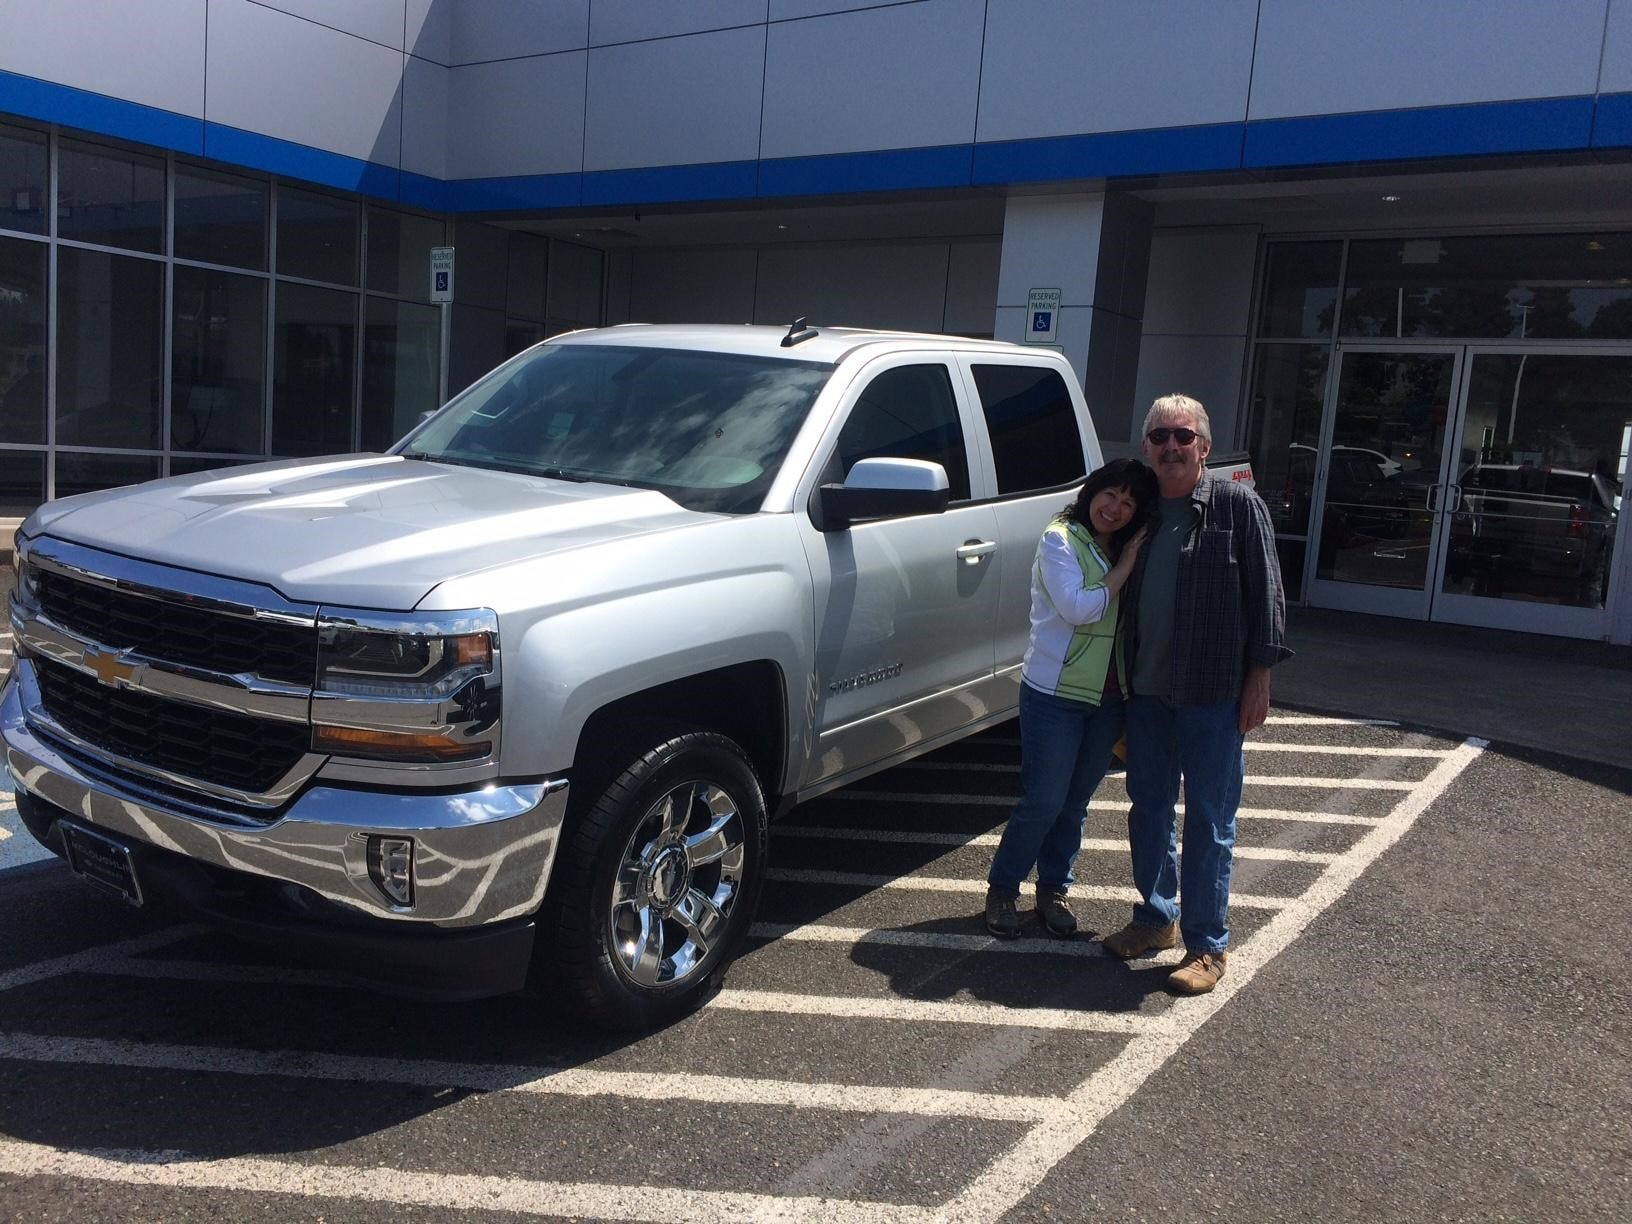 Pickup Truck Deals at McLoughlin Chevrolet made this Portland Buyer very Happy!